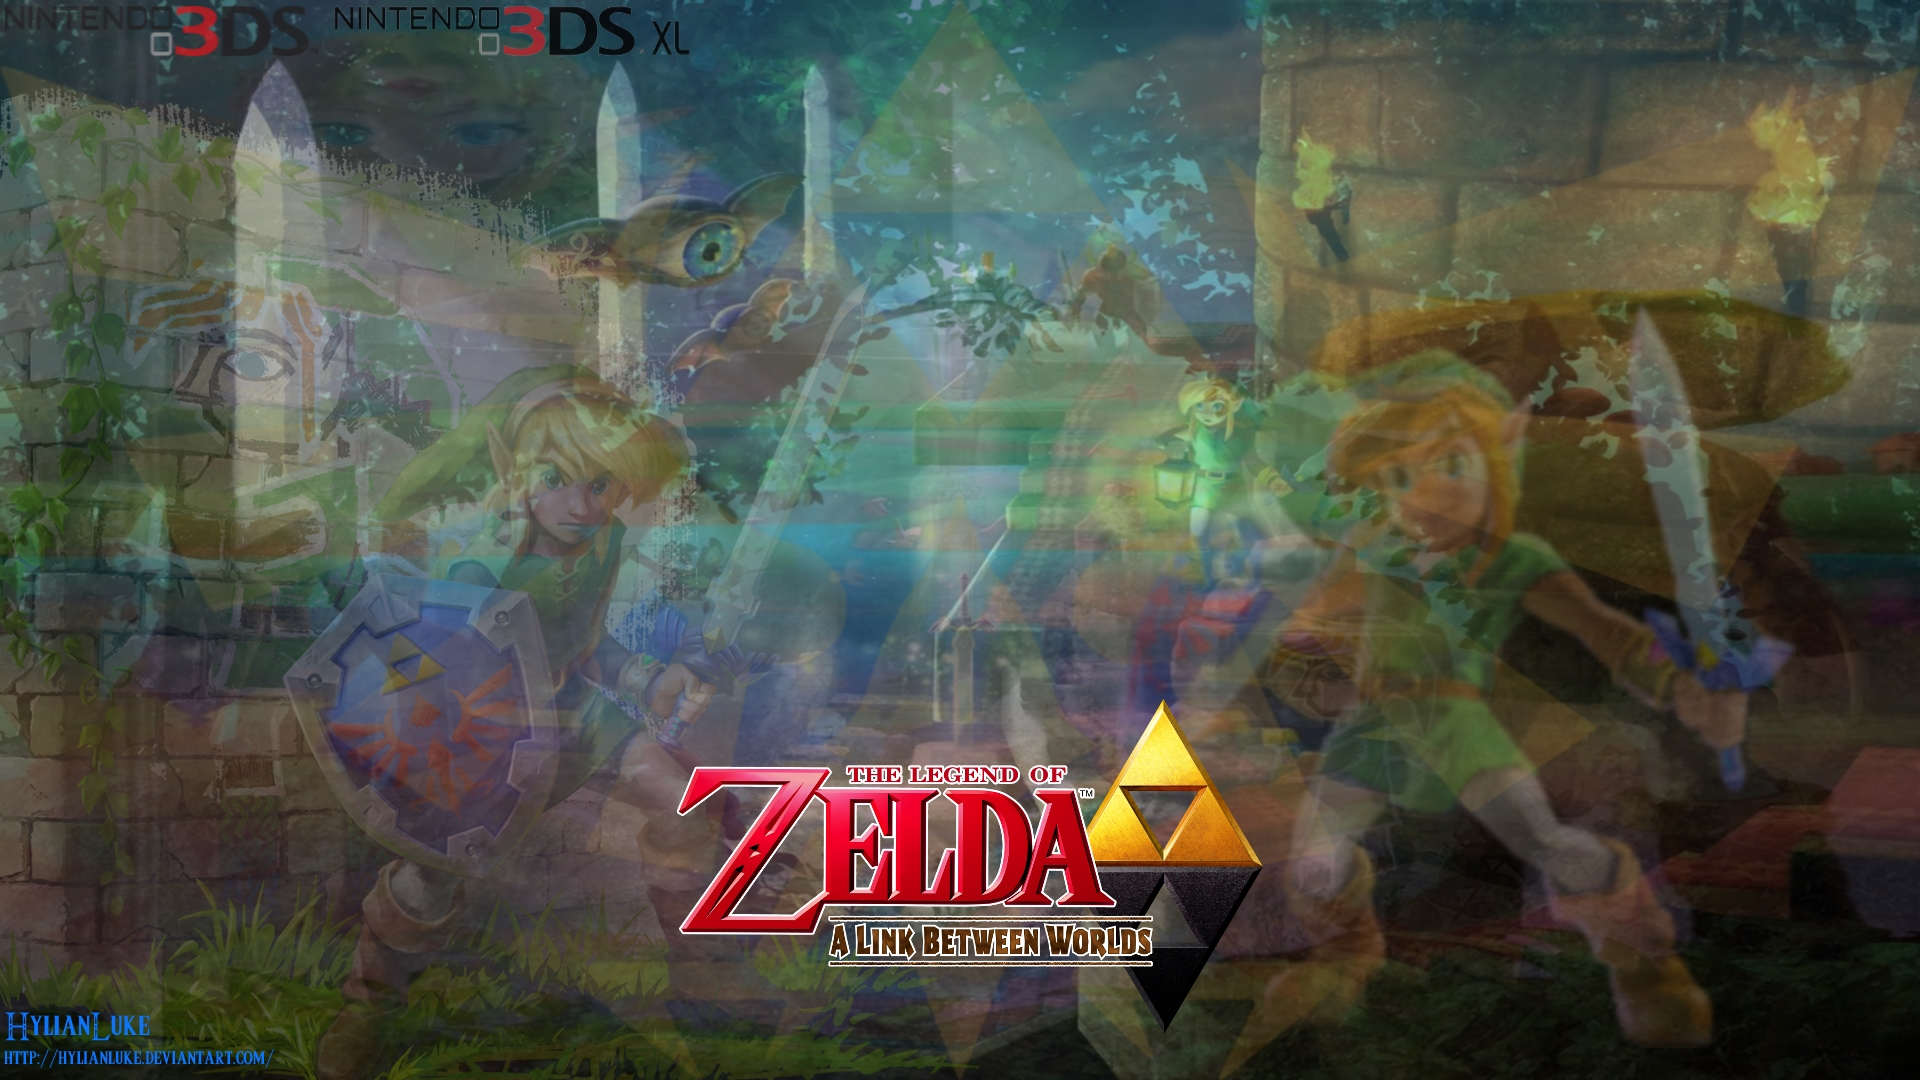 A Link Between Worlds Wallpaper 3 By Hylianluke On Deviantart